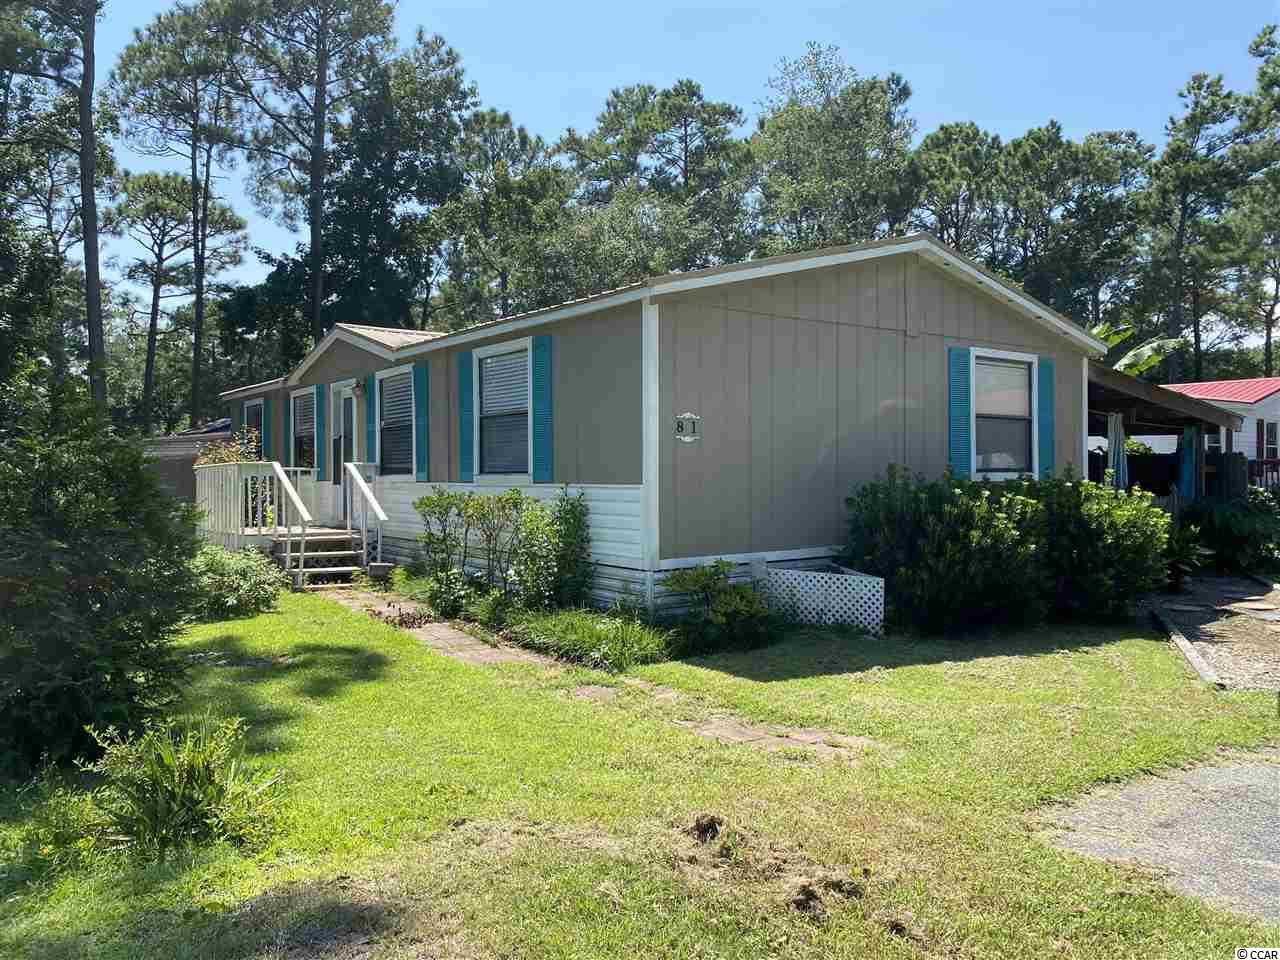 Wonderful spacious 3 bed, 2 bath home on leased lot in sought after Windjammer Village. Home is well decorated, sold furnished. Minutes from Garden City Pier & Marsh walk in Murrells Inlet. Home has a walk in closet, screened in porch, a relaxing sprawling covered patio with KOI pond providing more than enough space to grill or just chill and enjoy your favorite beverage.  Large back yard with covered shed for a golf cart or boat along with 3 additional sheds to store all your beach chairs and umbrella.  This is a great buy!!! Can be used as a beach get away or a permanent residence!!!  Come check it out!!!!